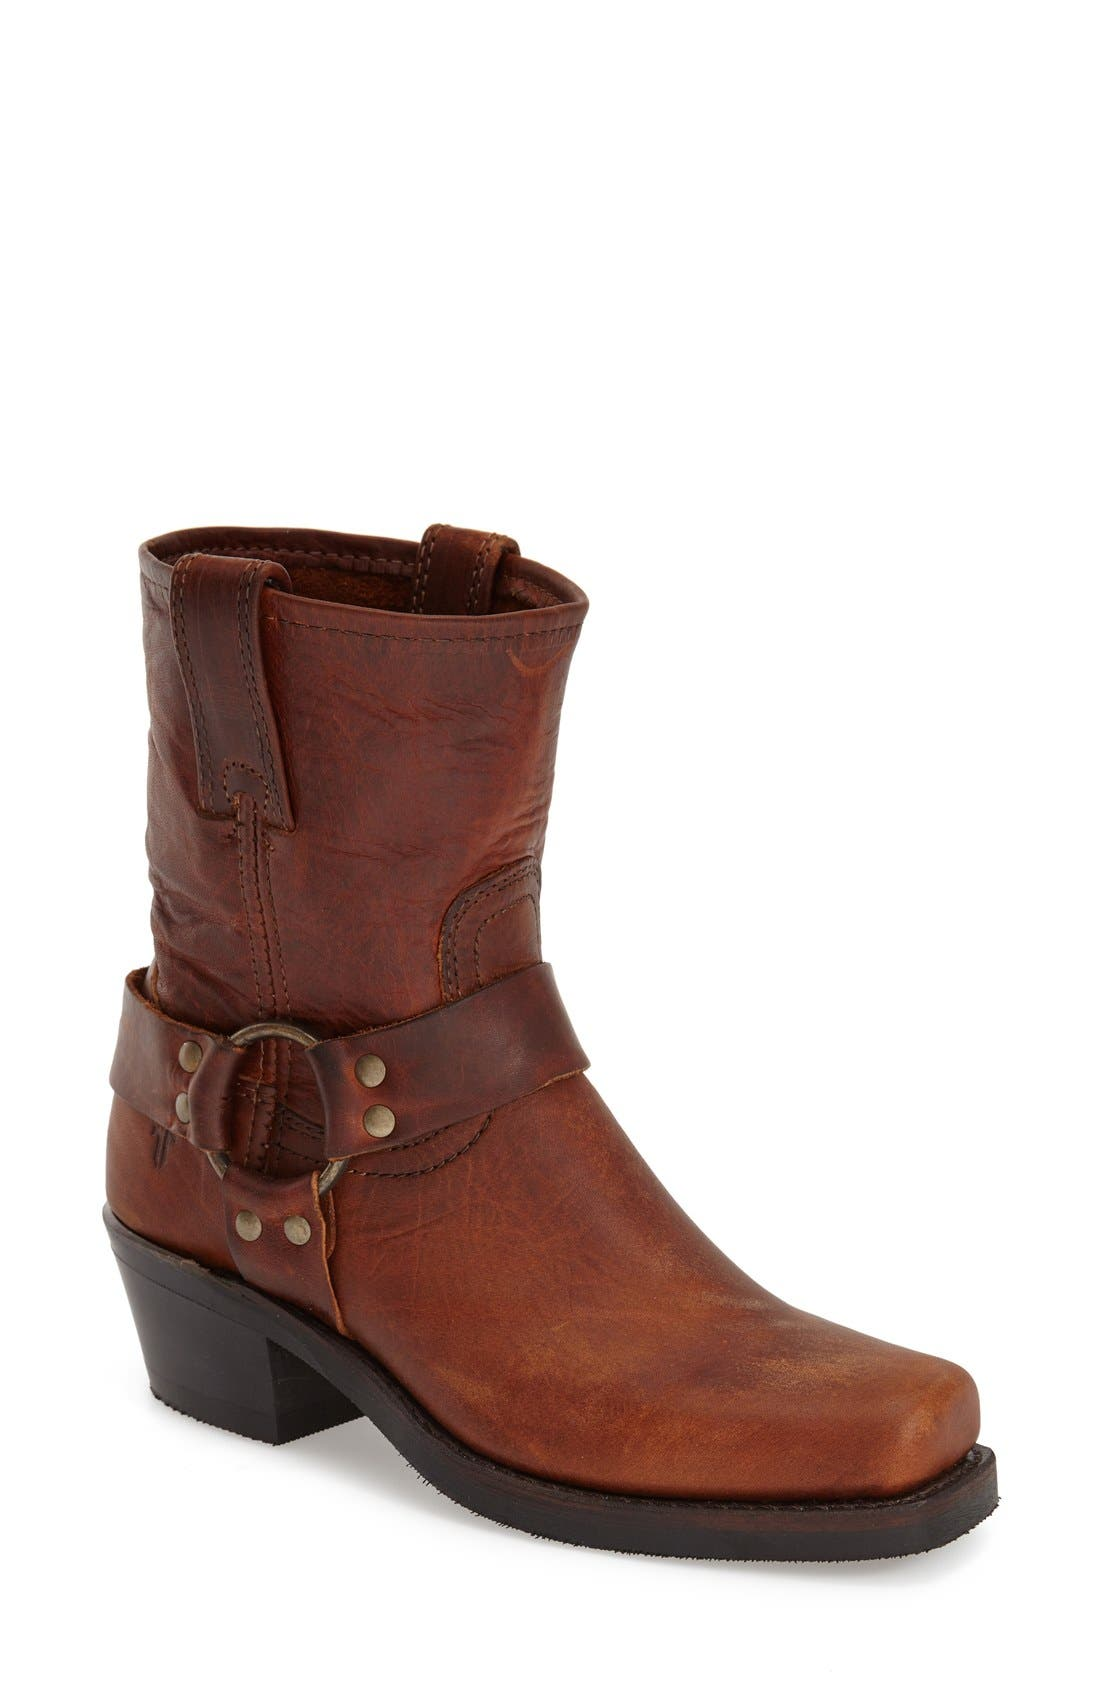 'Harness 8R' Boot,                         Main,                         color, Cognac